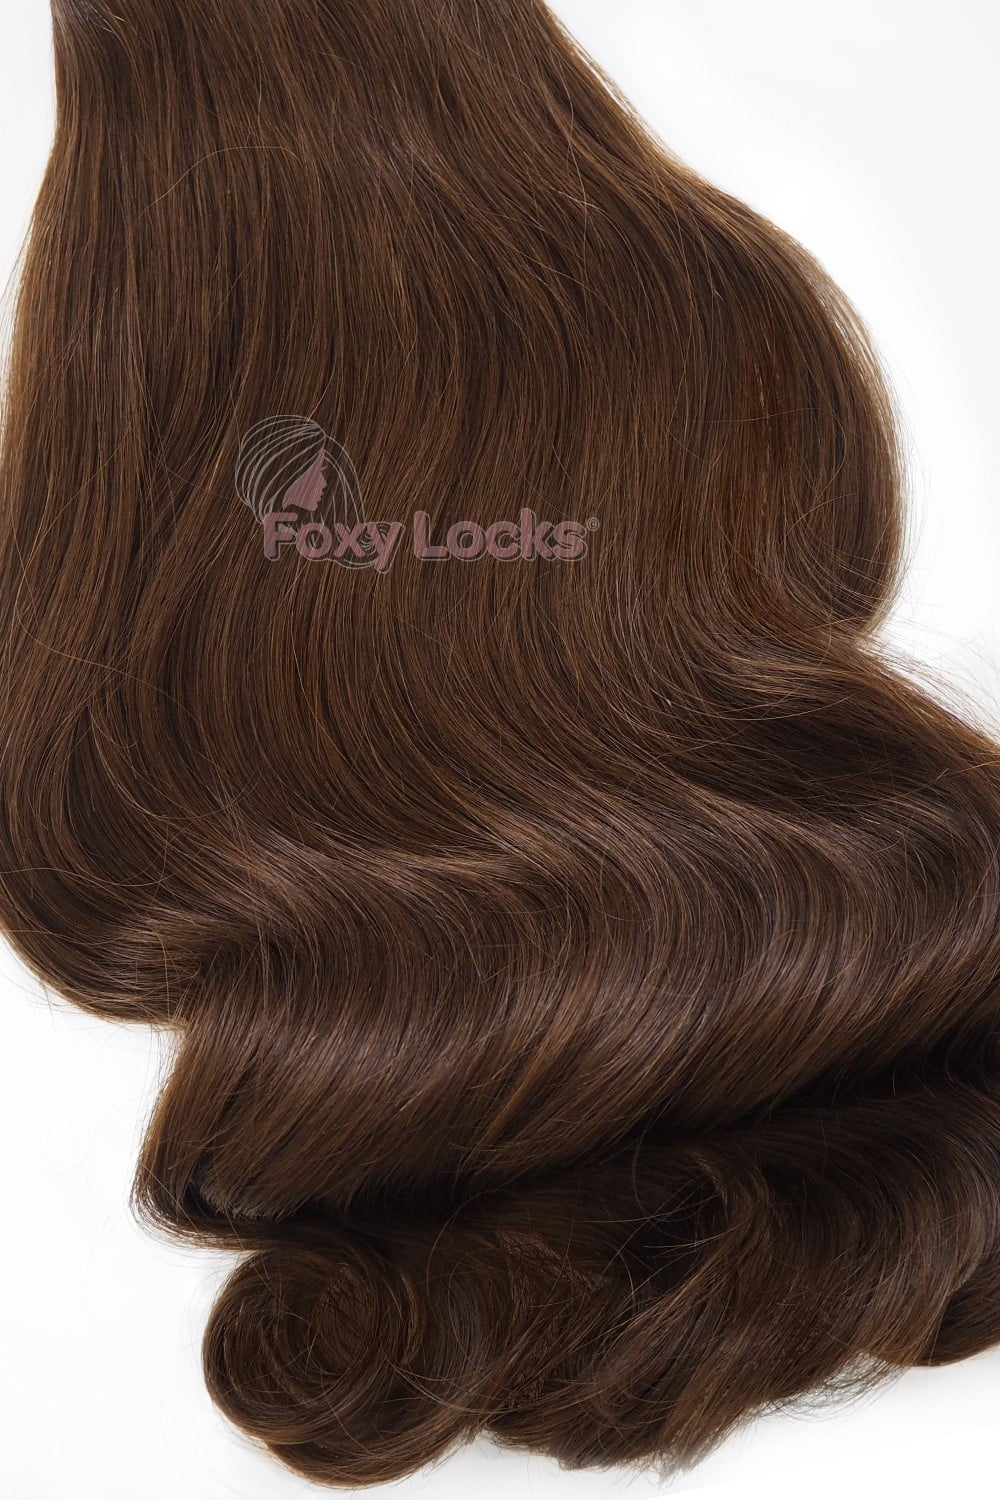 Chocolate Brown 4 Deluxe 20 Clip In Human Hair Extensions 165g